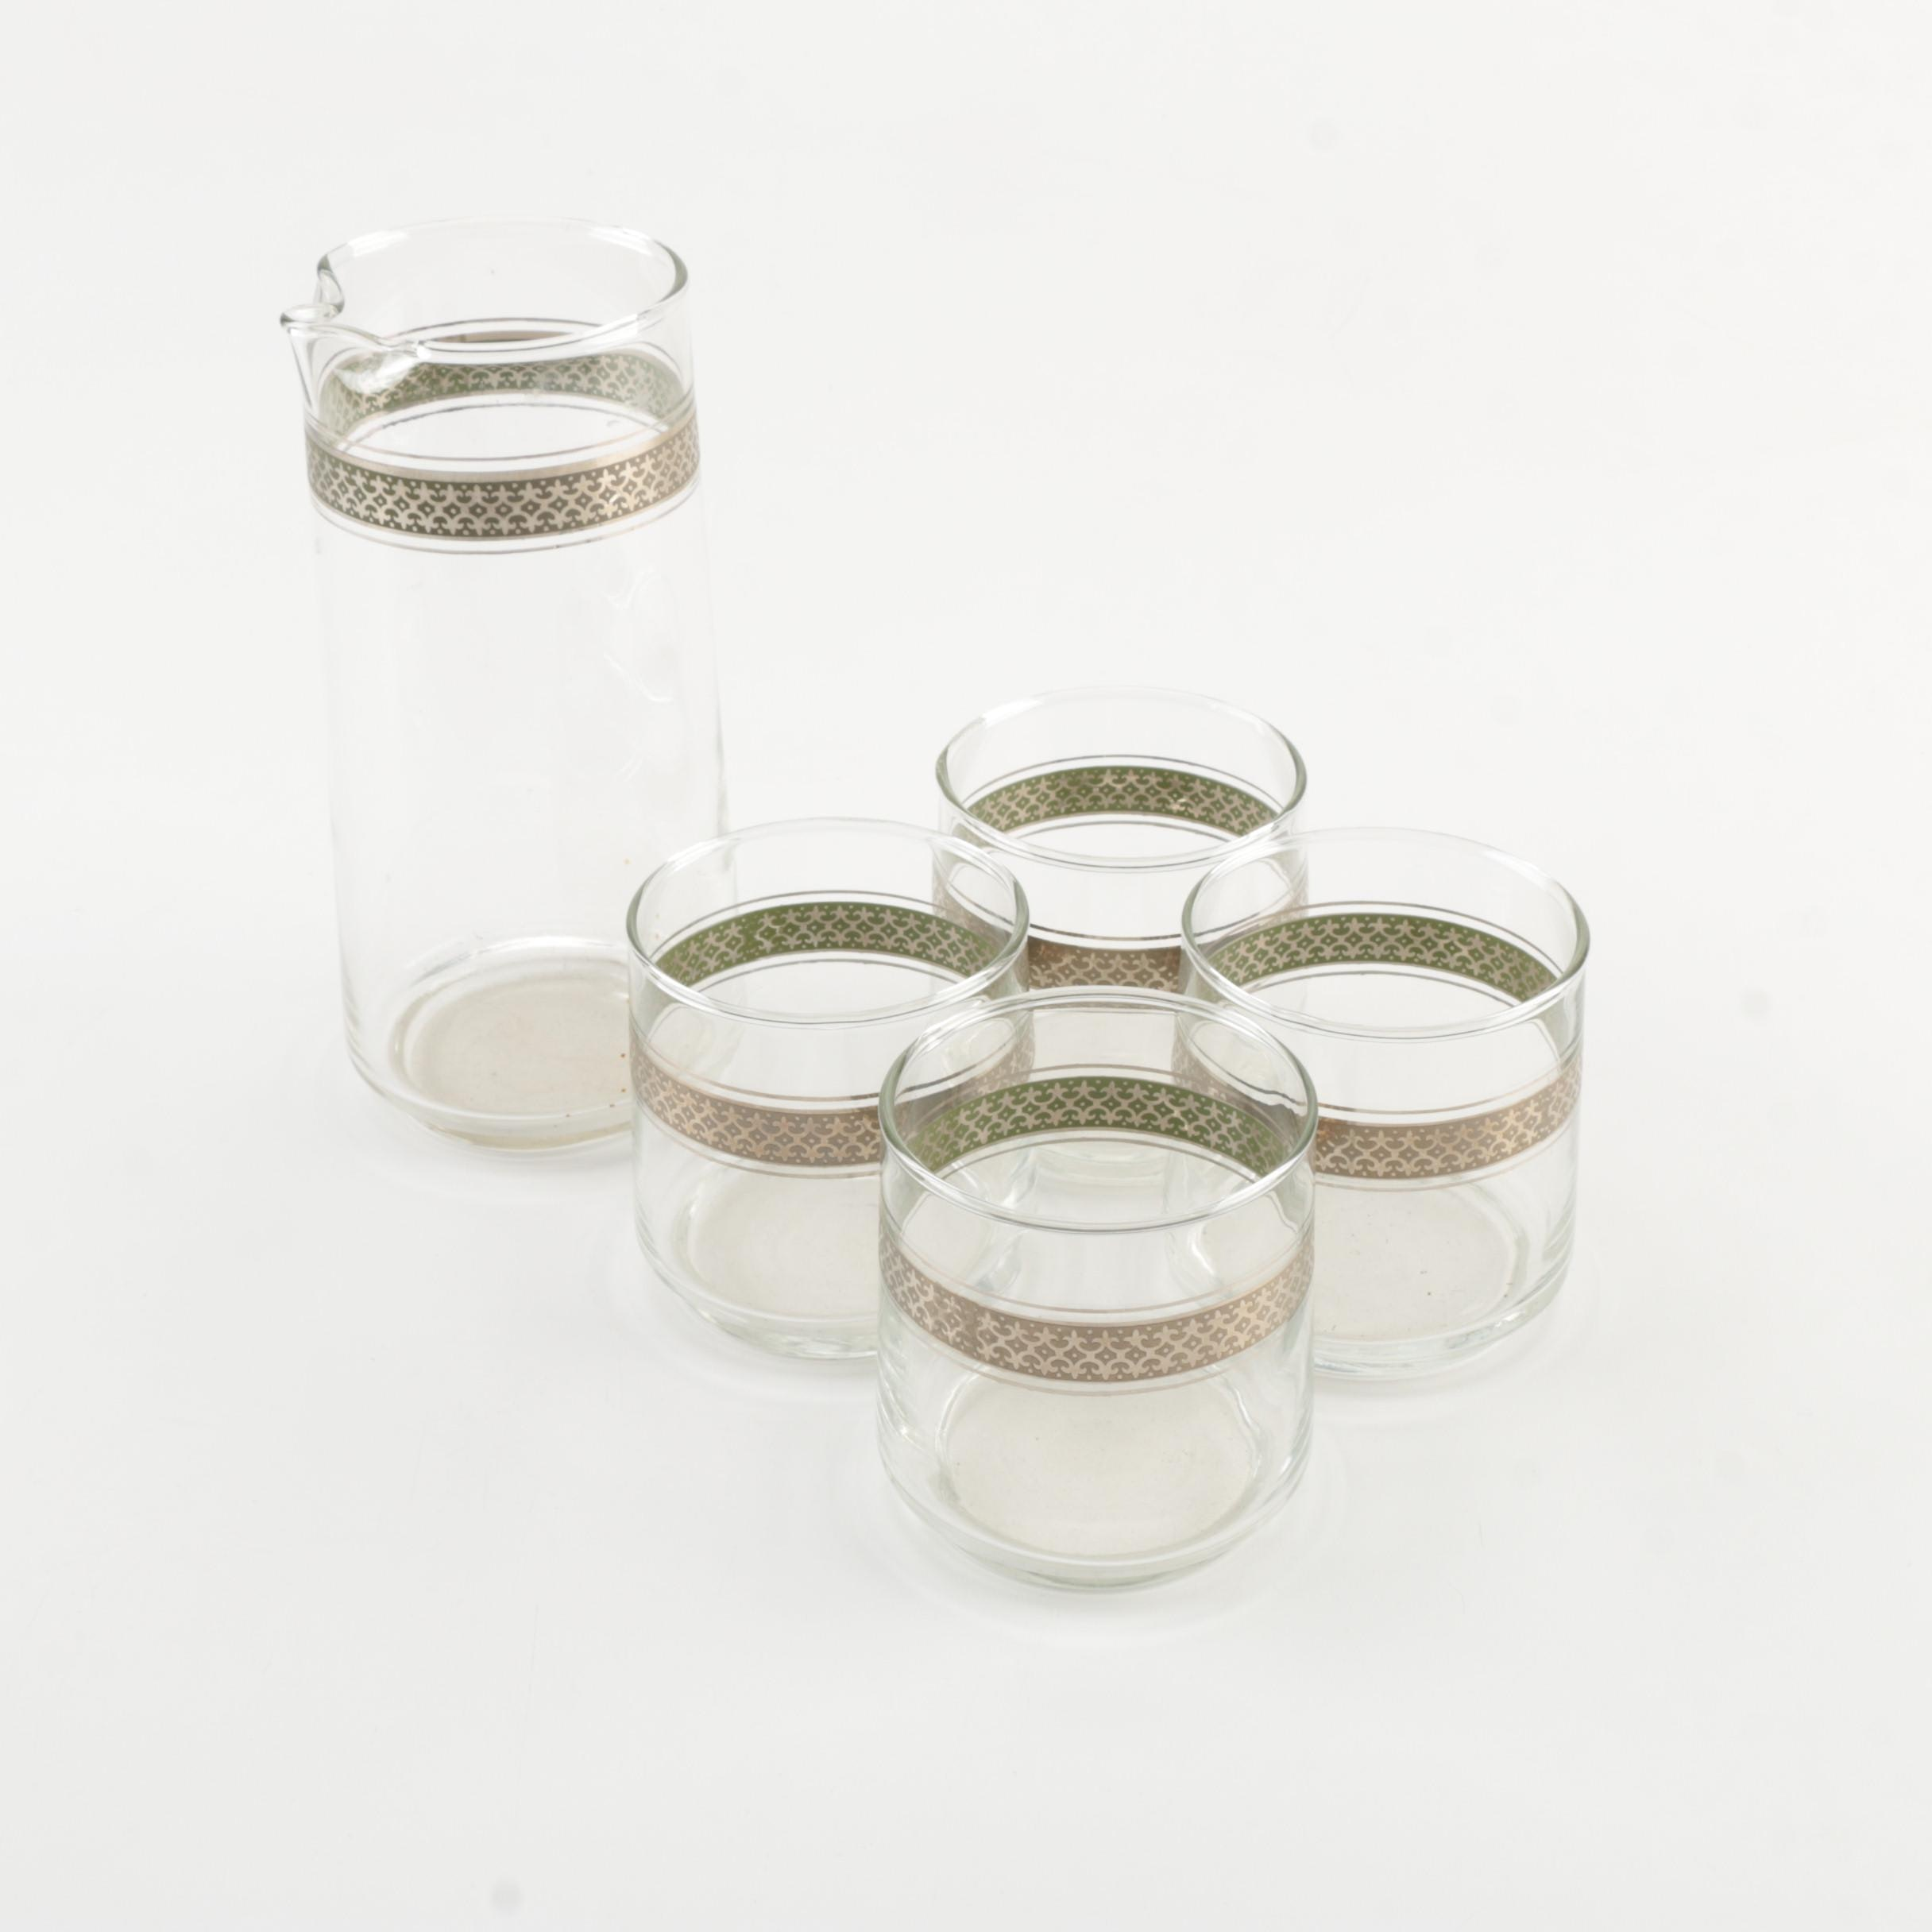 Silver Tone Rimmed Drinkware Set